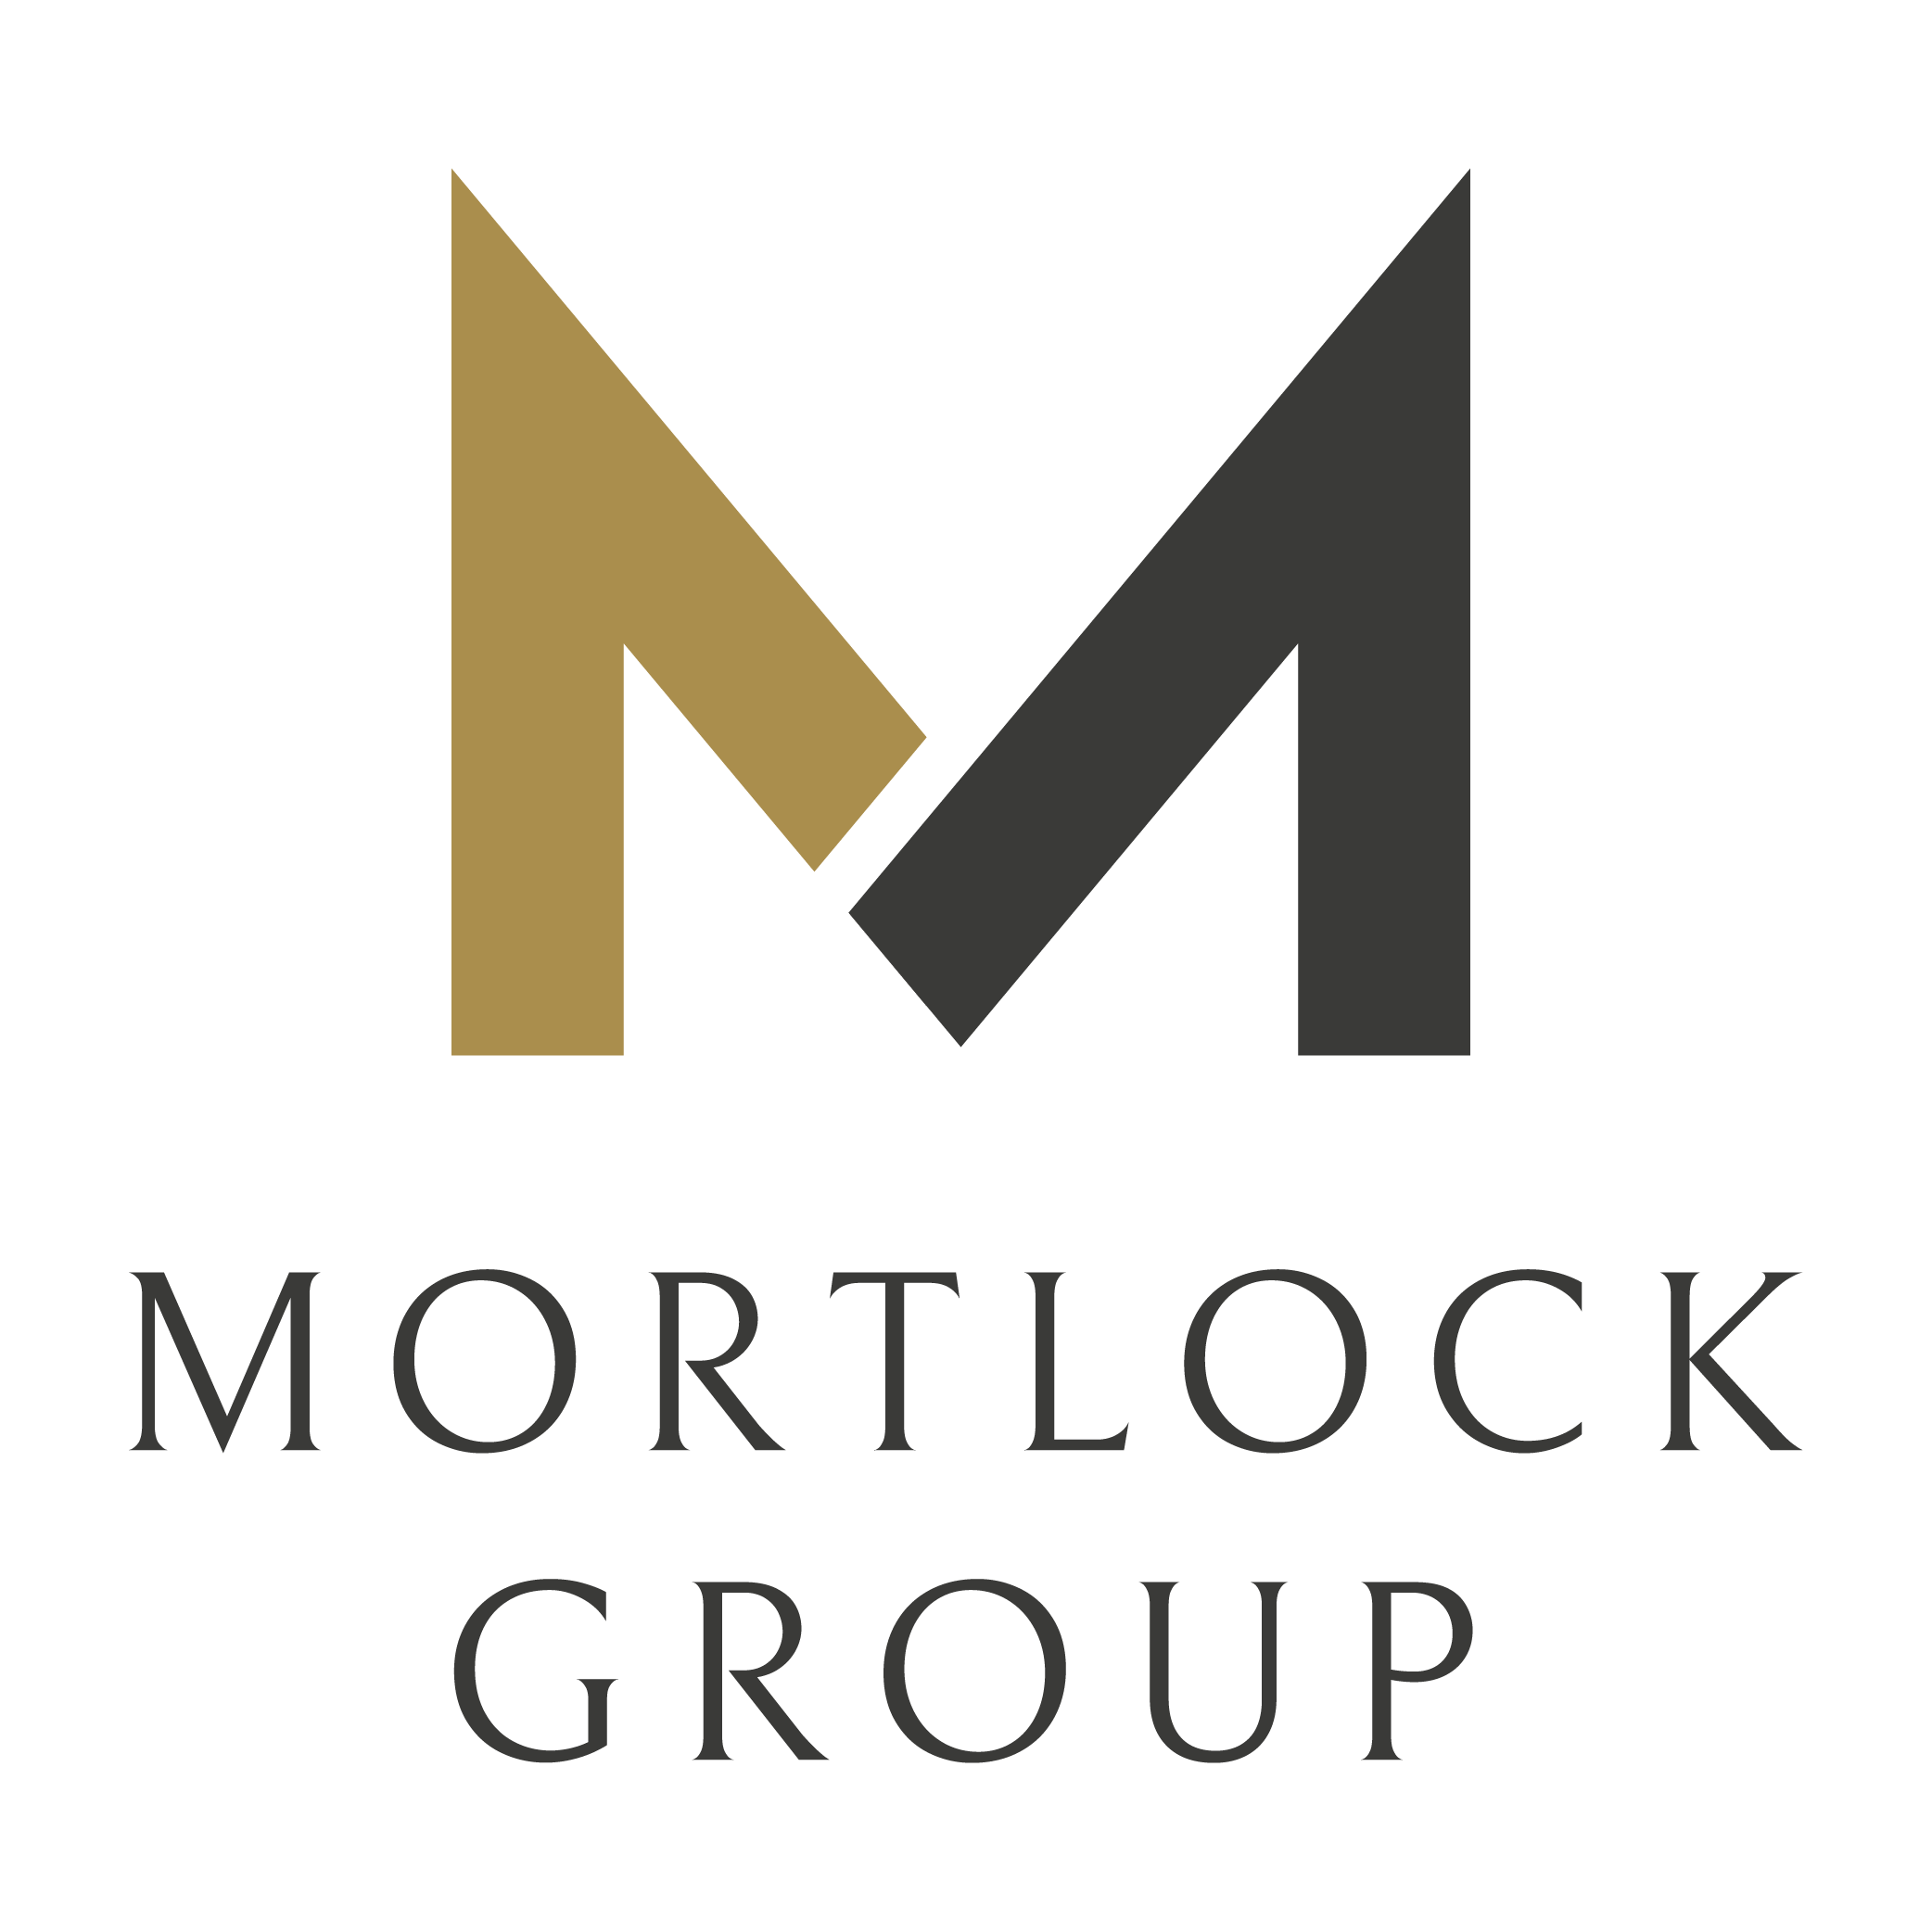 Mortlock Group